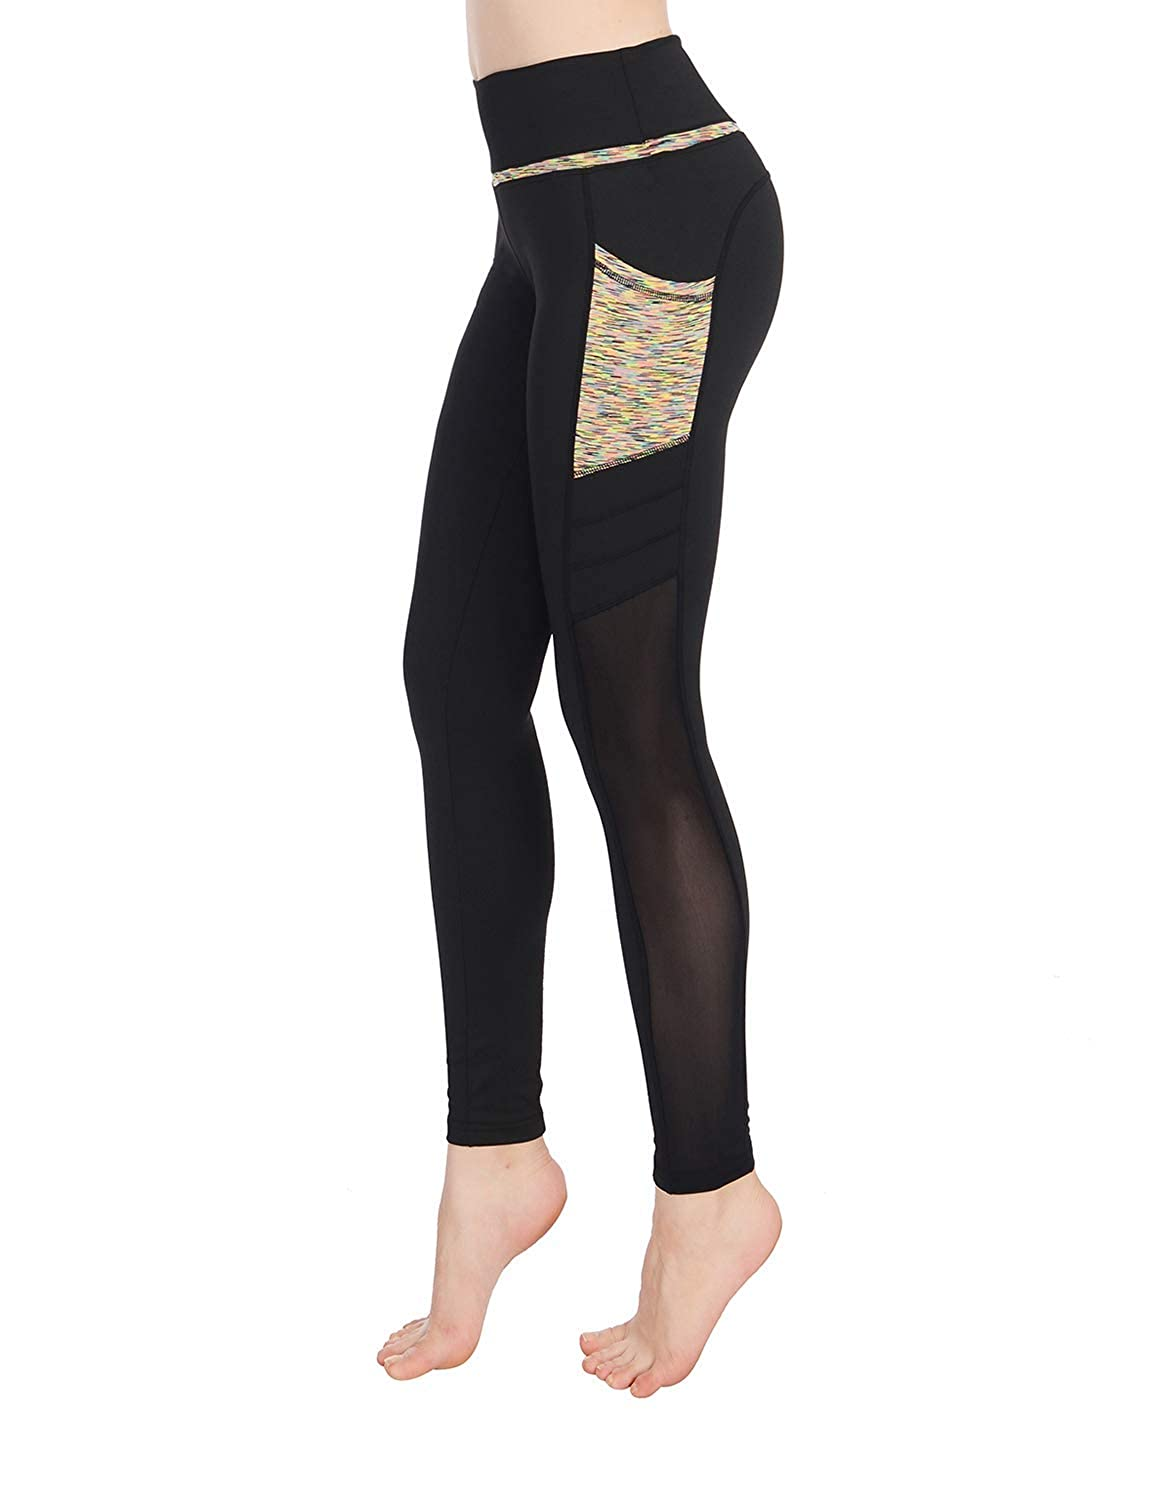 ae771e2456 Amazon.com: Sylonway Women's High Waist Yoga Pants with Pockets & Mesh  Tummy Control Workout Running Leggings for Sports Fitness Gym: Clothing